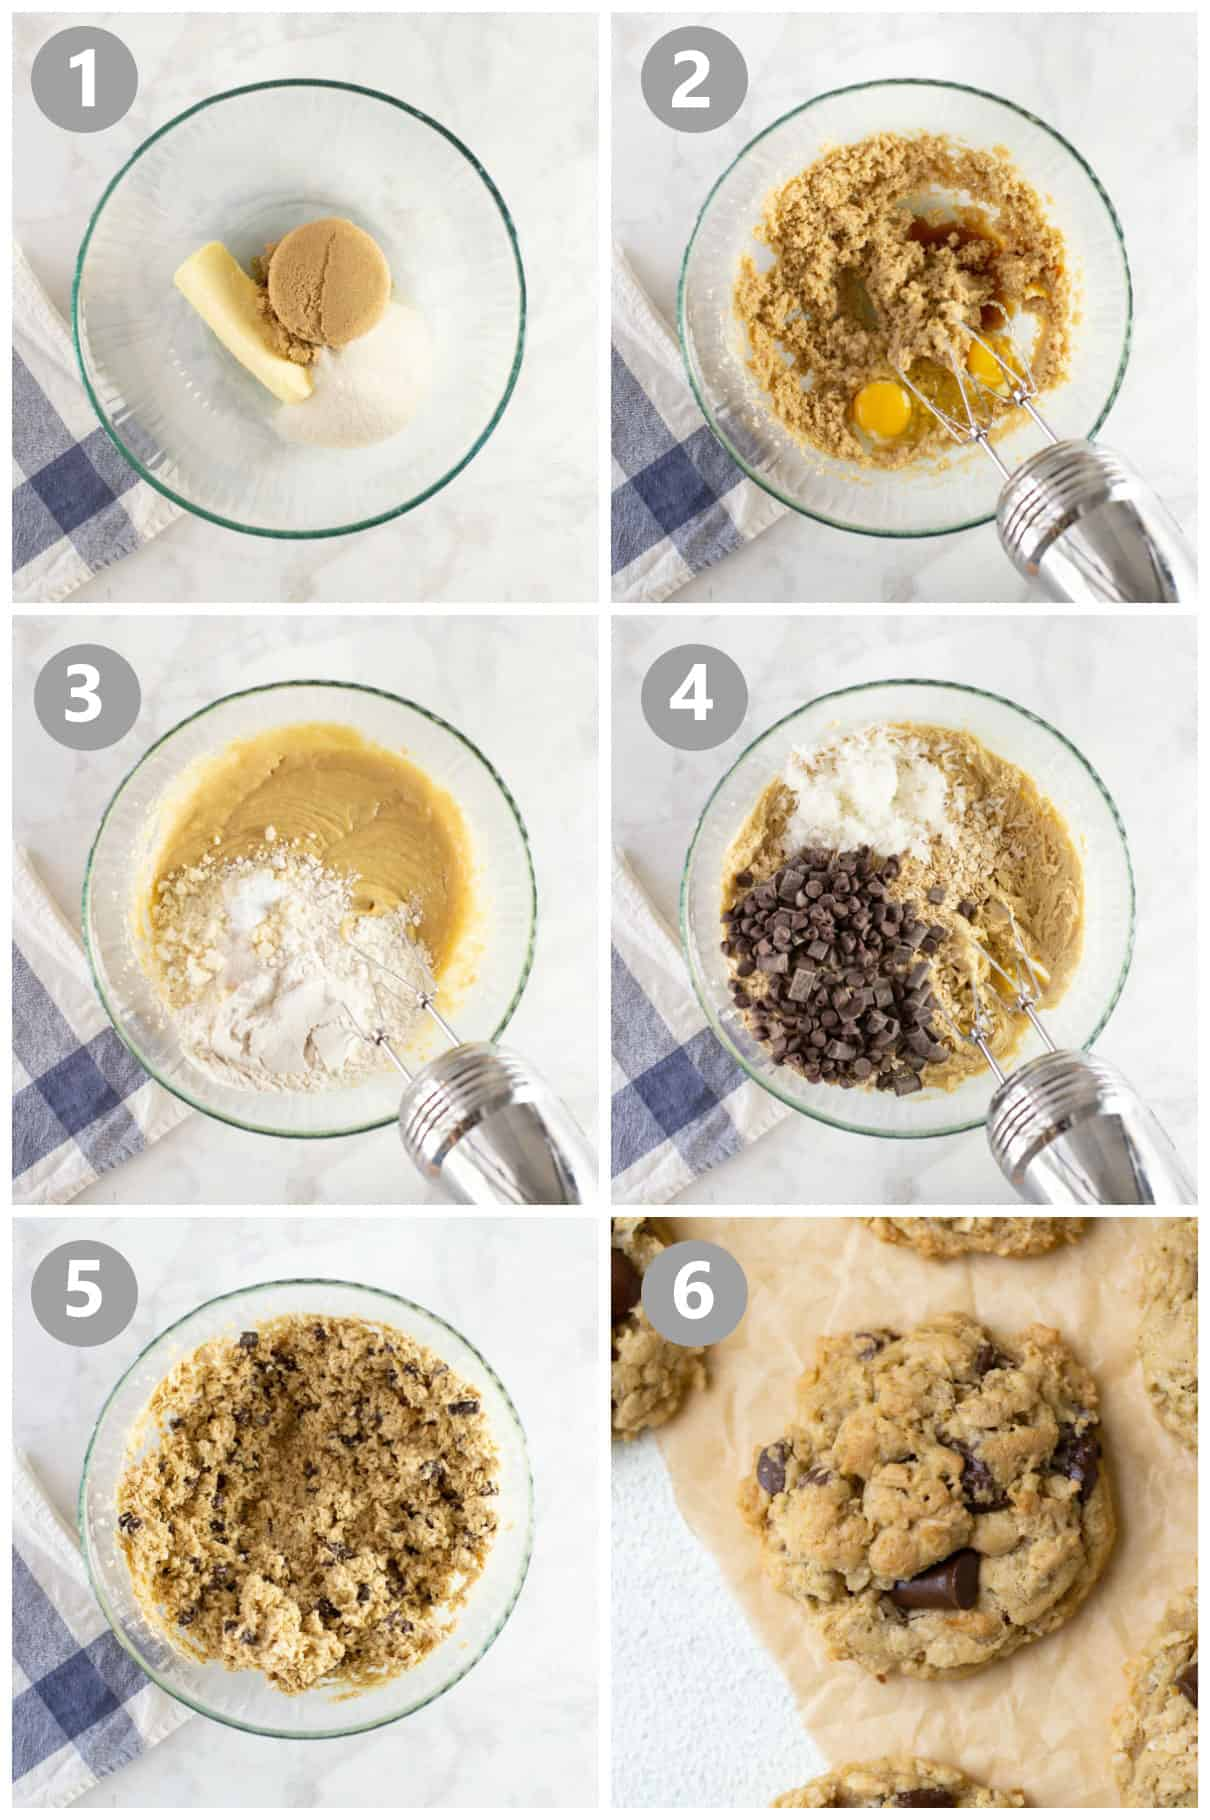 steps for how to make gluten-free oatmeal chocolate chip cookies